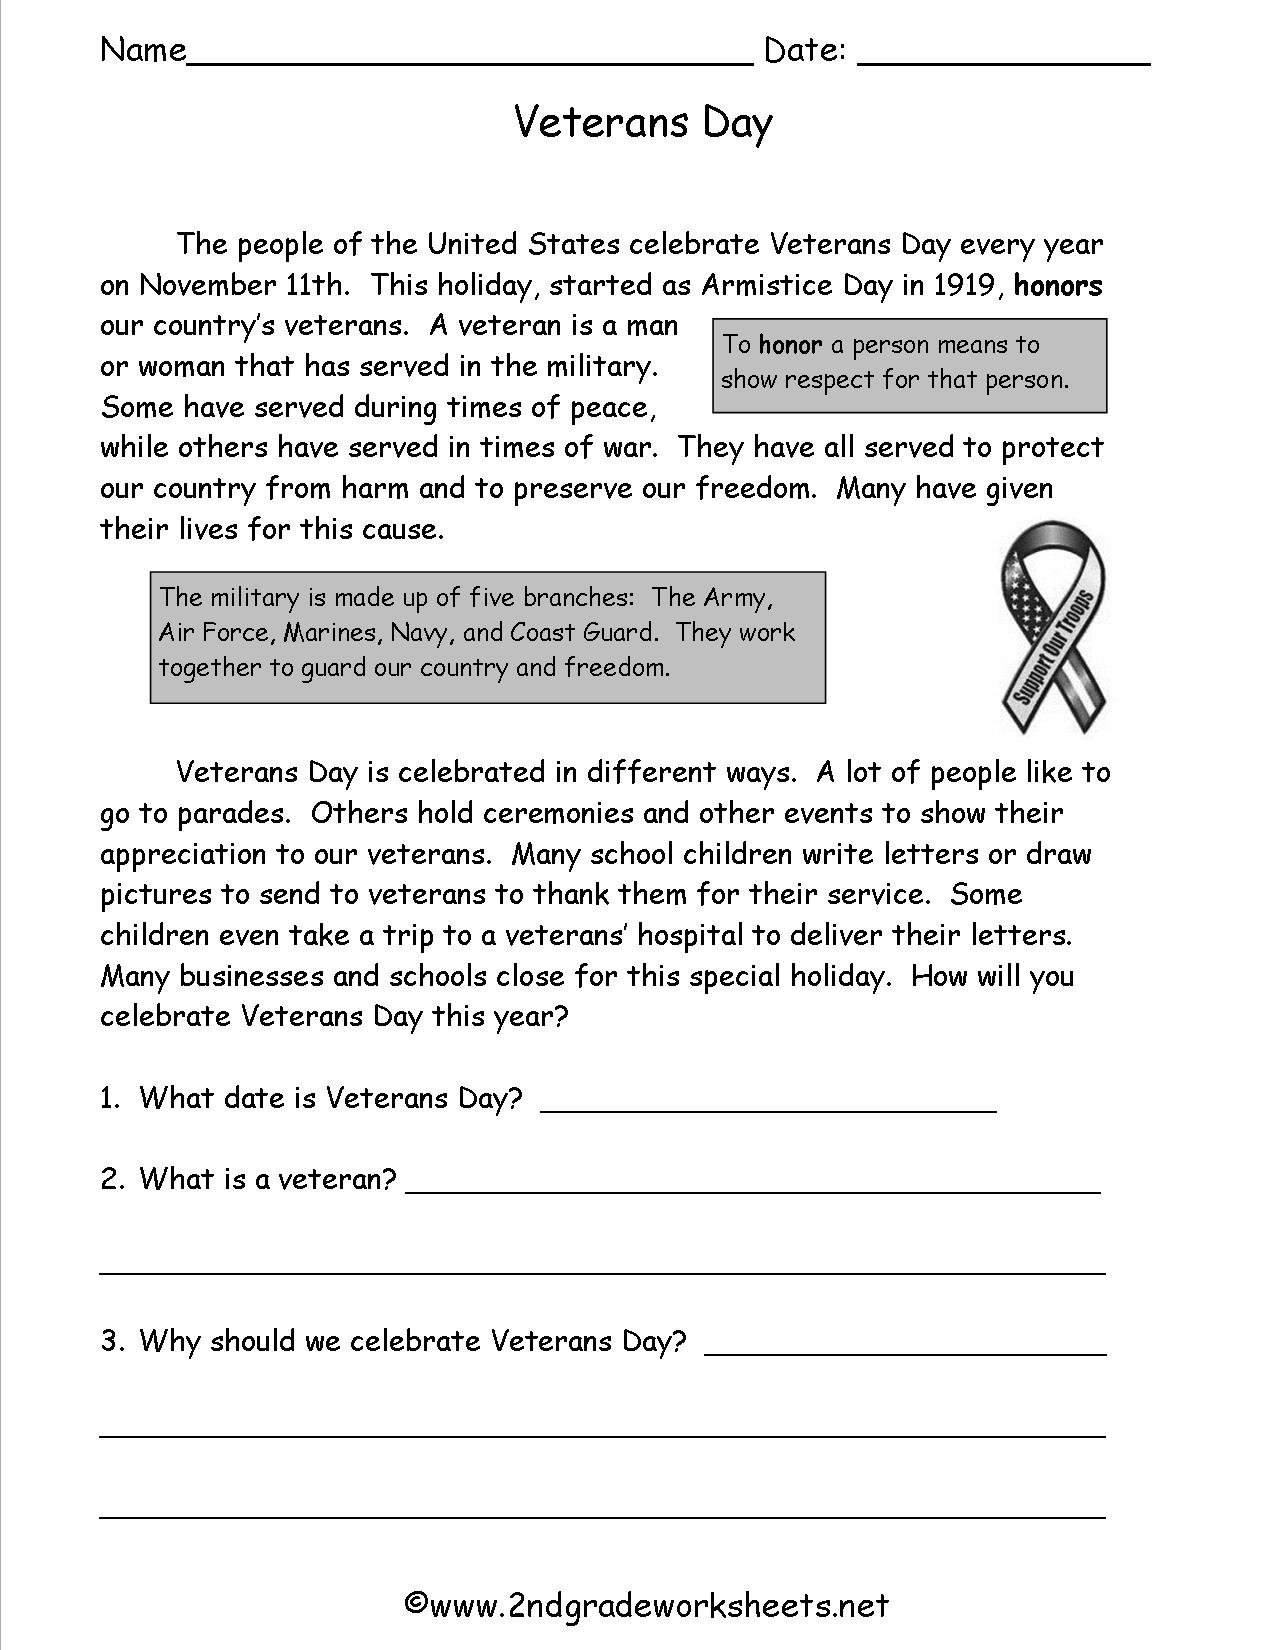 14 Best Images Of Veterans Day Worksheets For Elementary